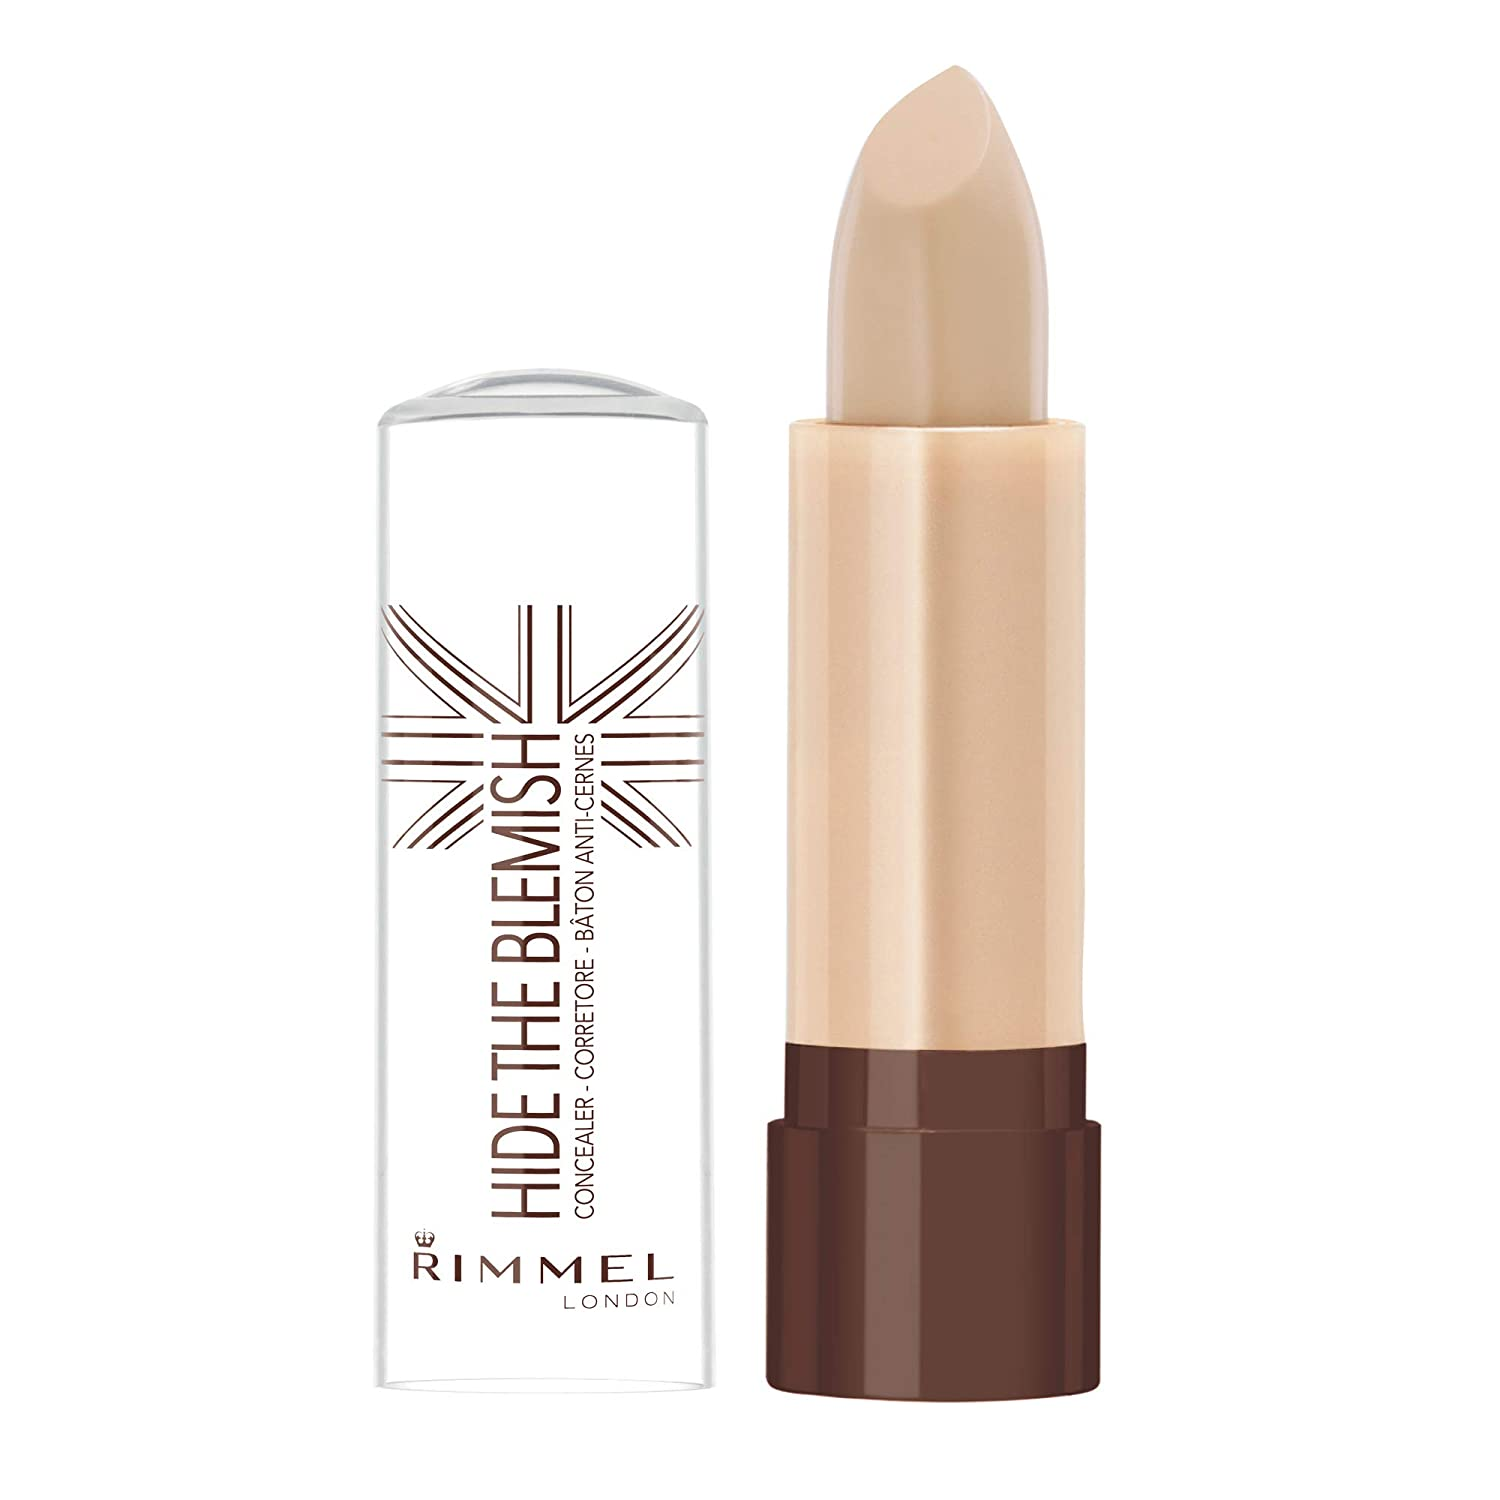 Rimmel London Hide The Blemish Concealer, Neutralizer - 201, 5g Coty 027-7810